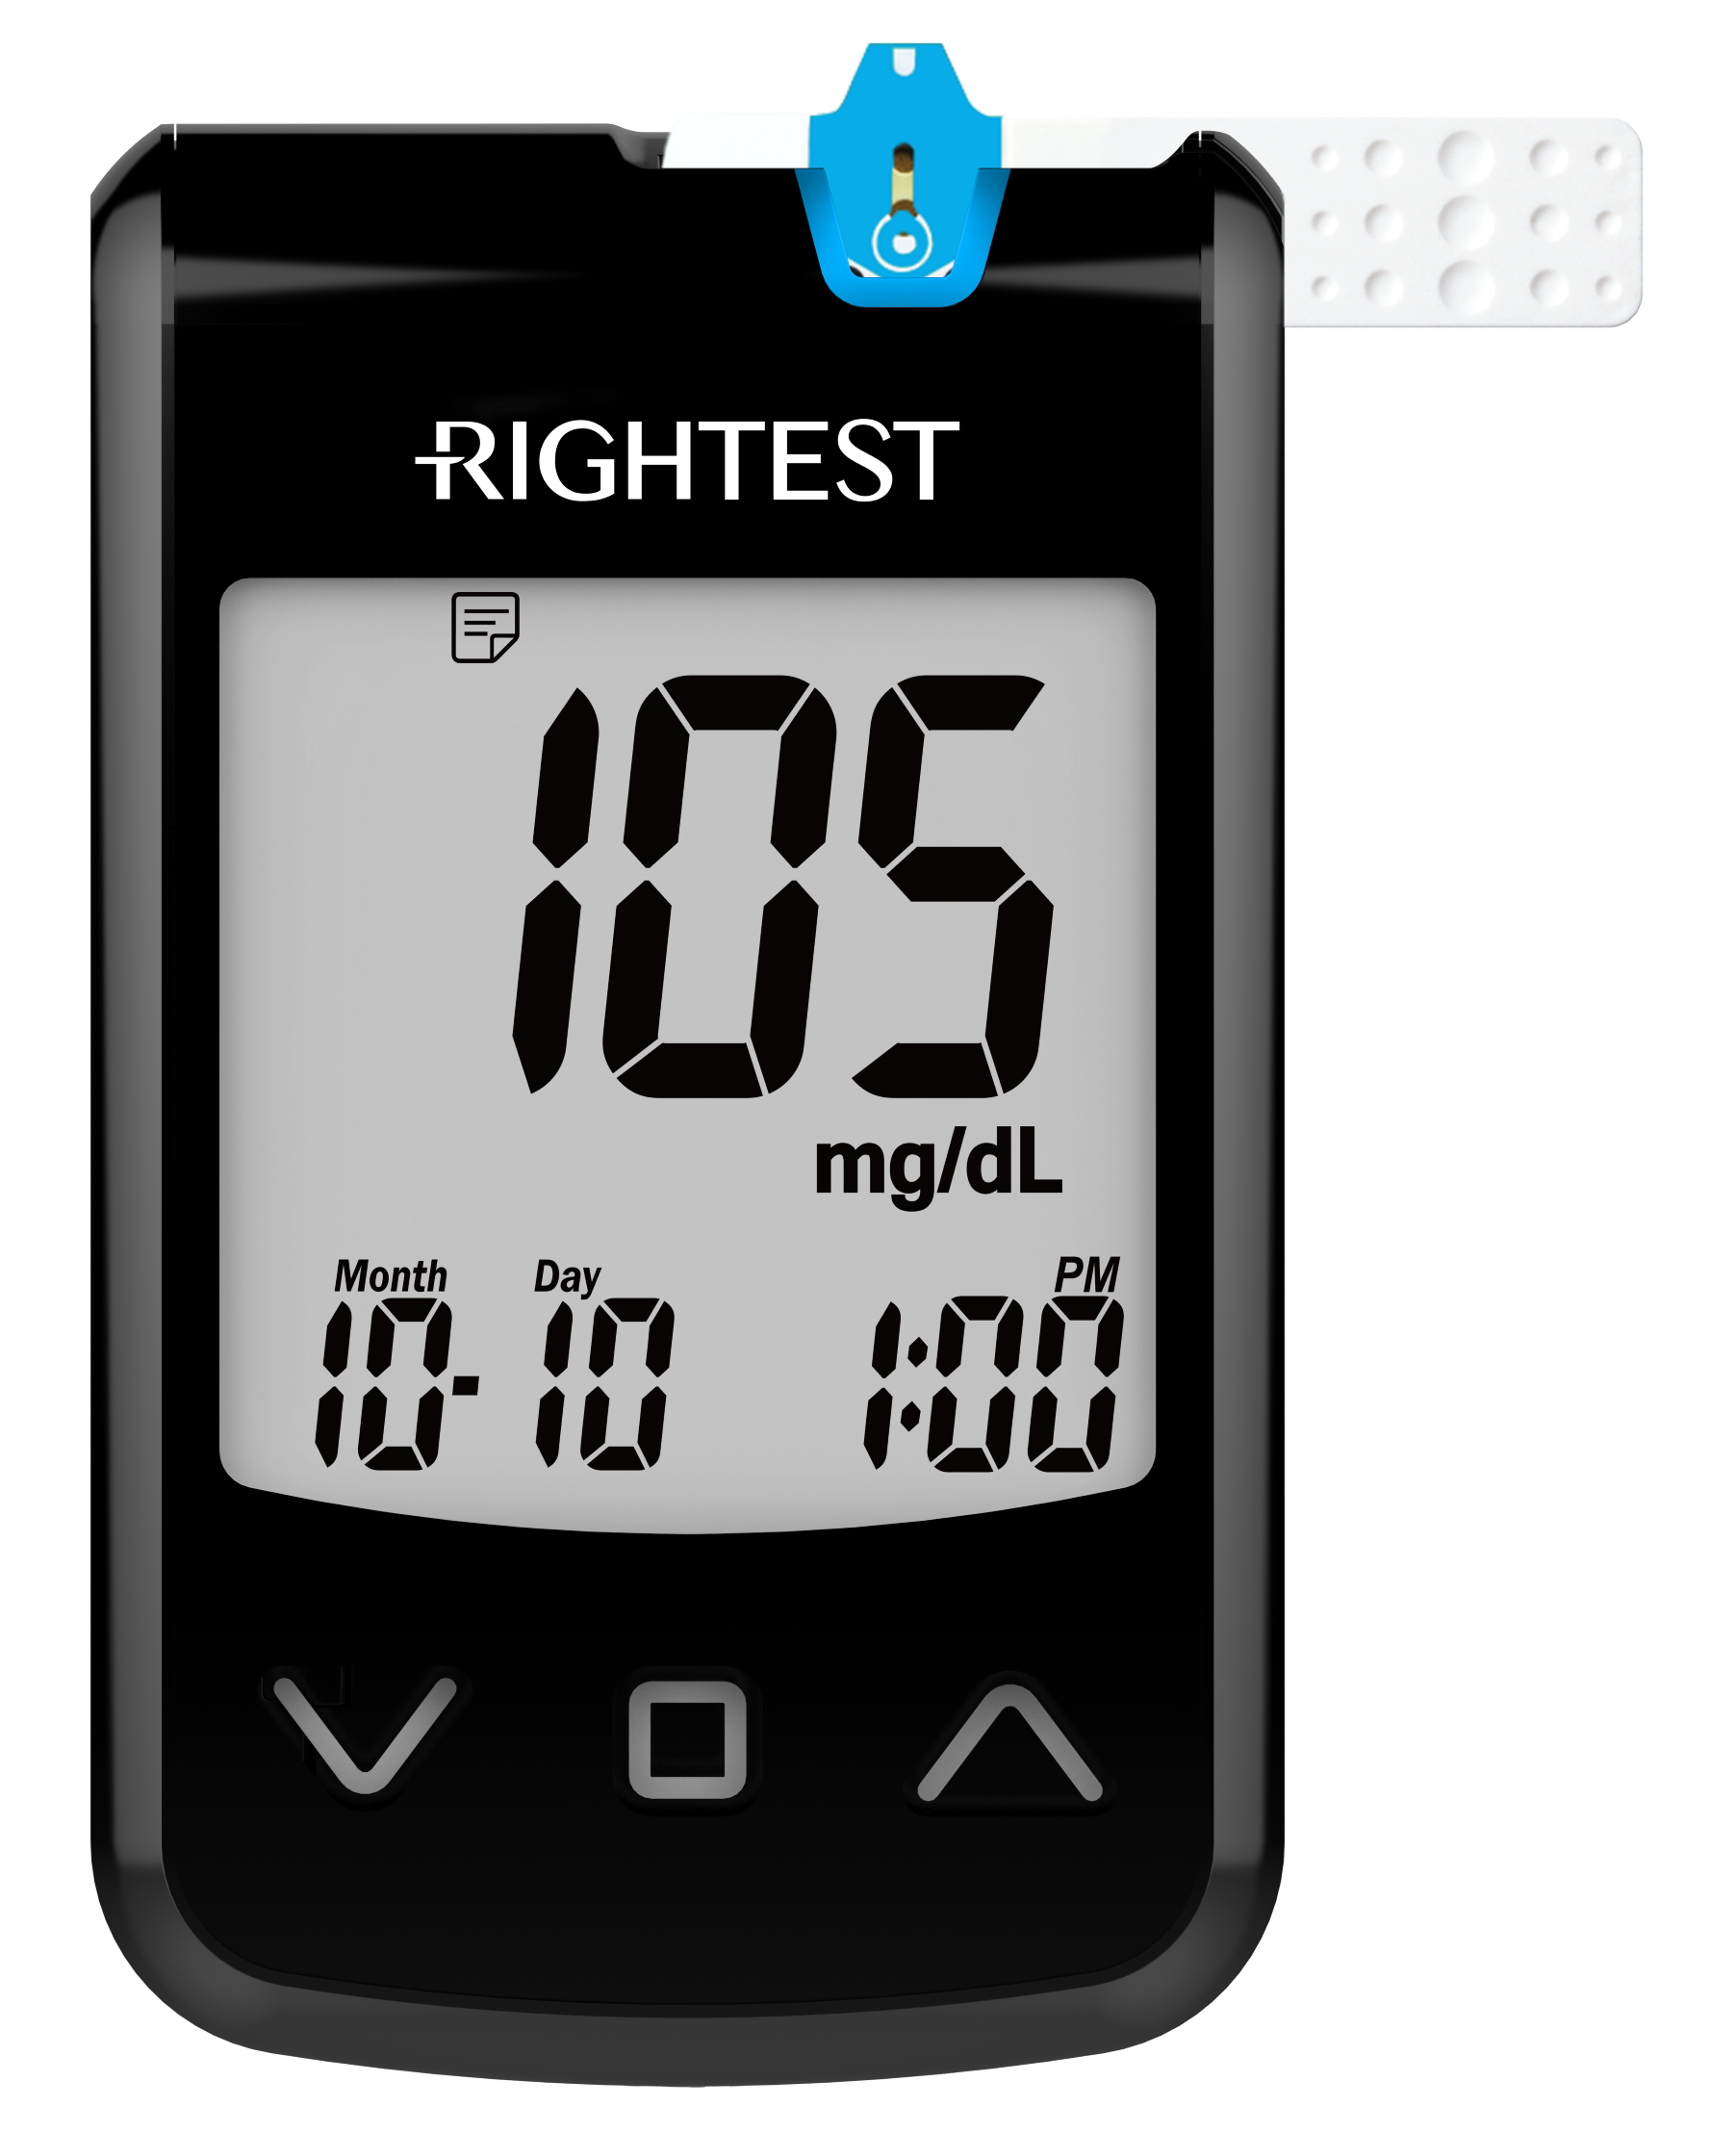 Bionime USA Max Plus Blood Glucose Meter